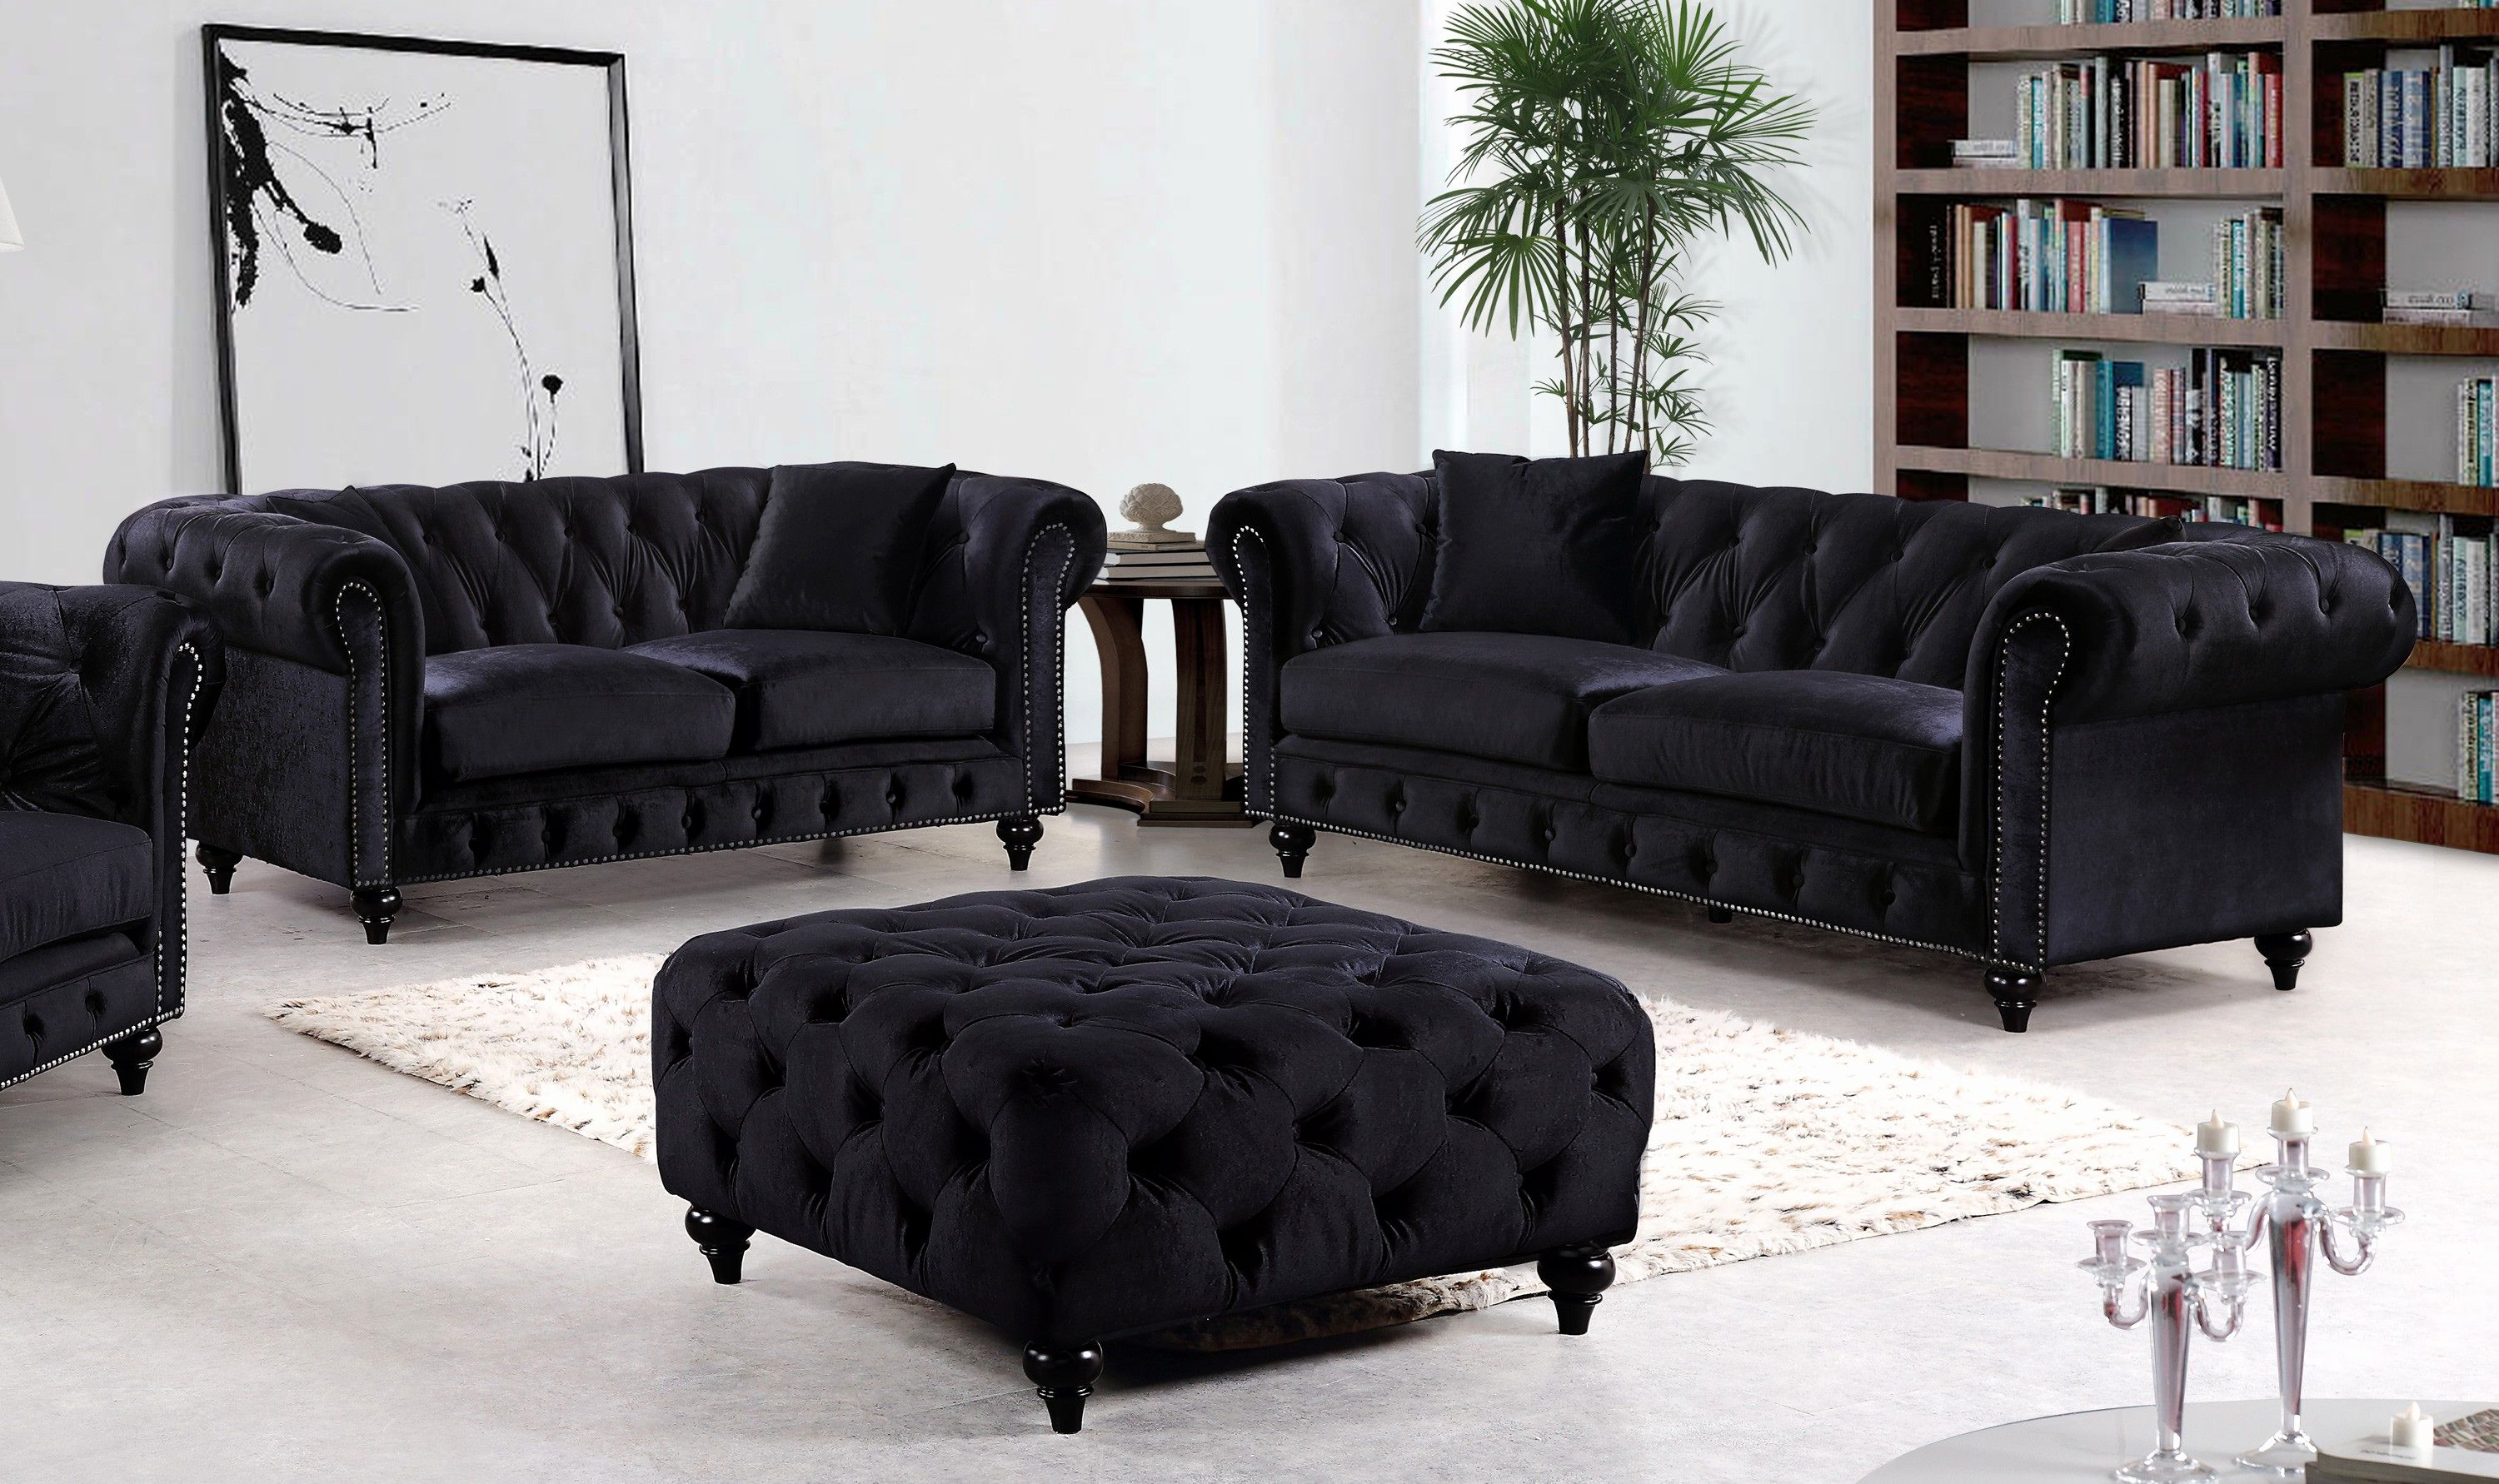 Ideas Black Velvet Sofas Pics Elegant Best Sofa Set 13 In Contemporary Inspiration With